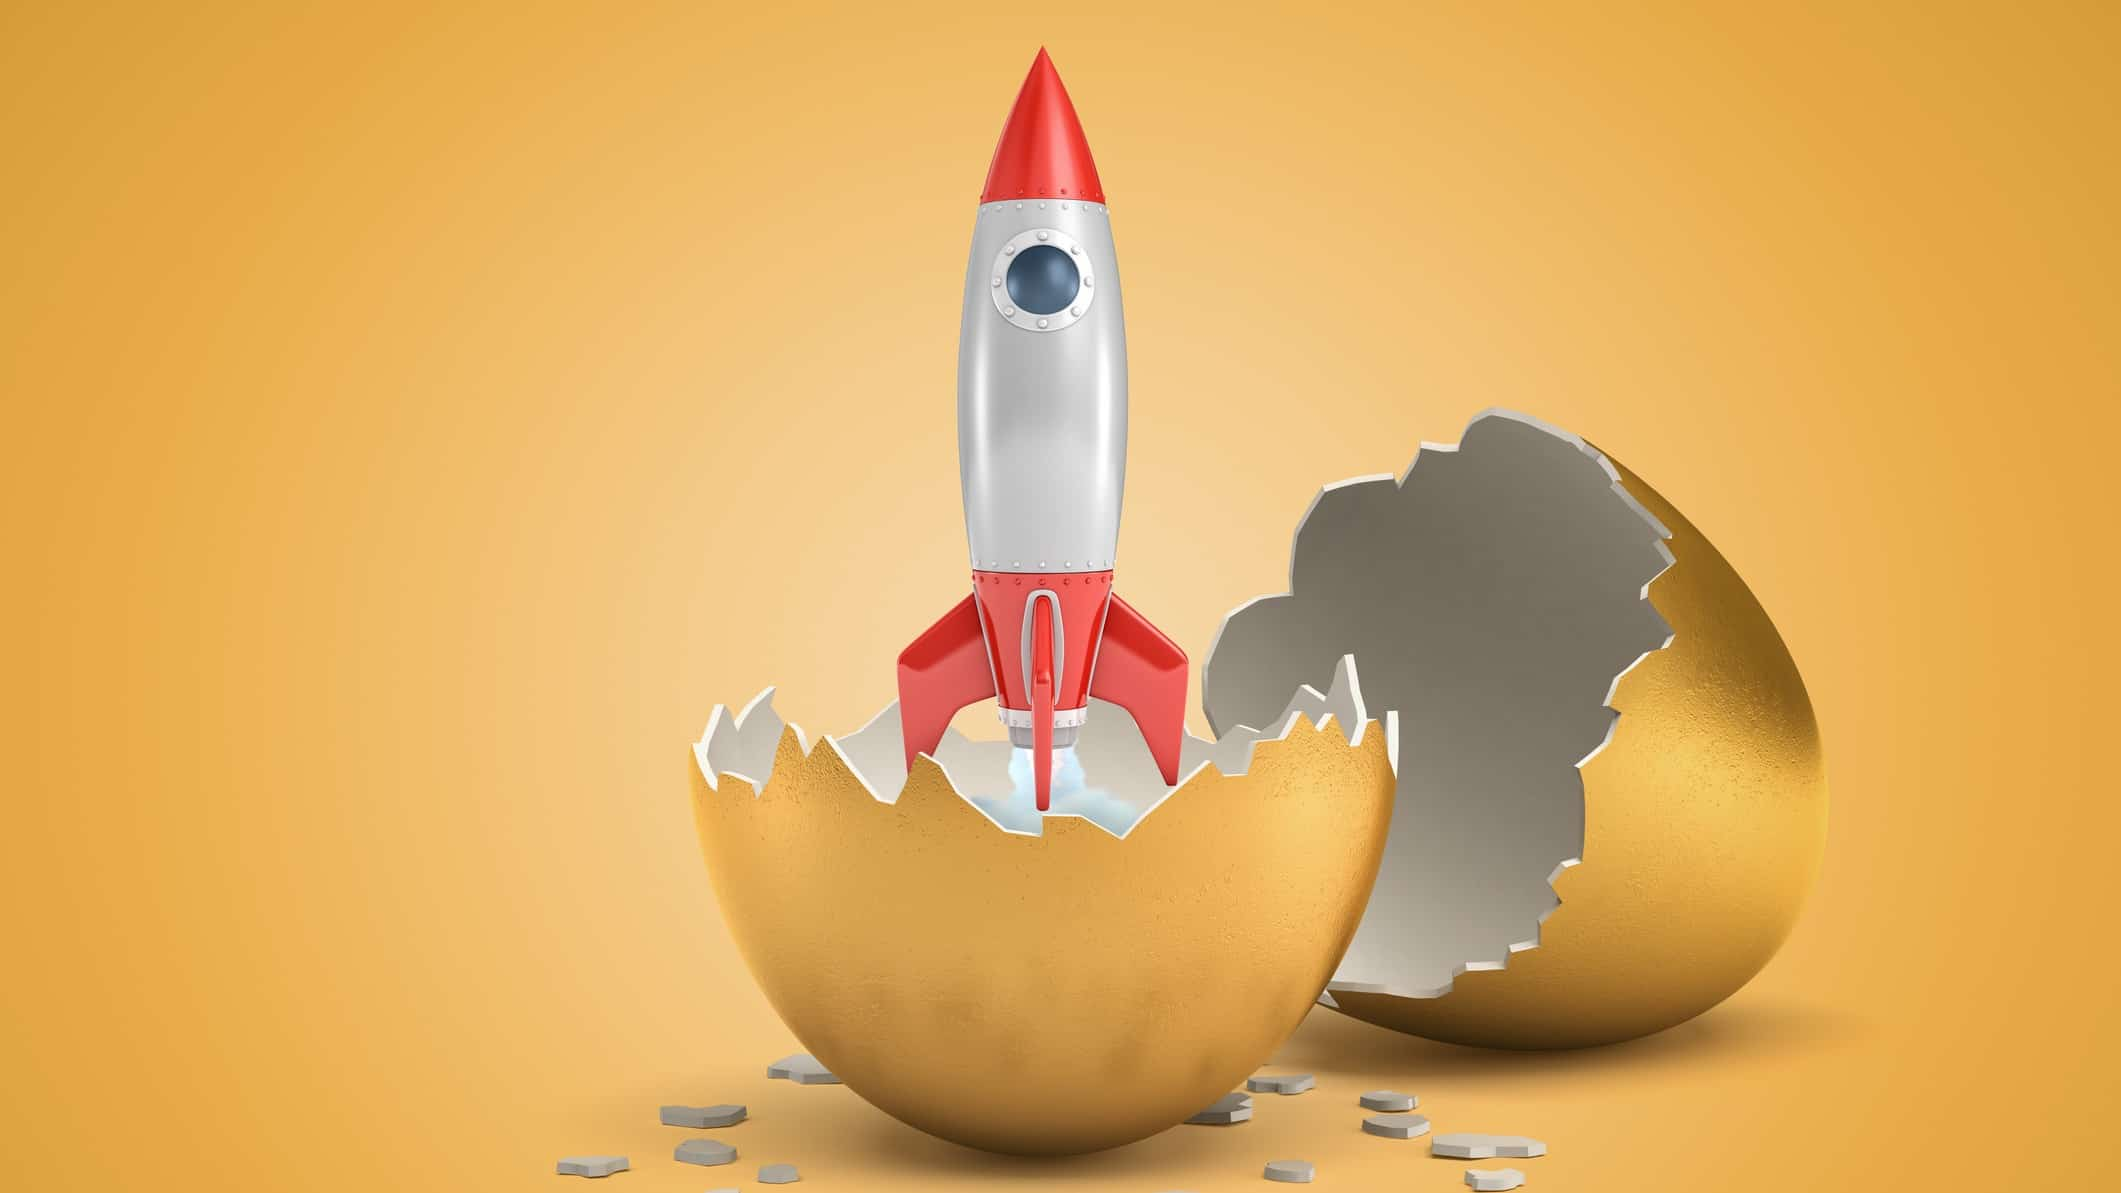 miniature rocket breaking out of golden egg representing rocketing bbx share price